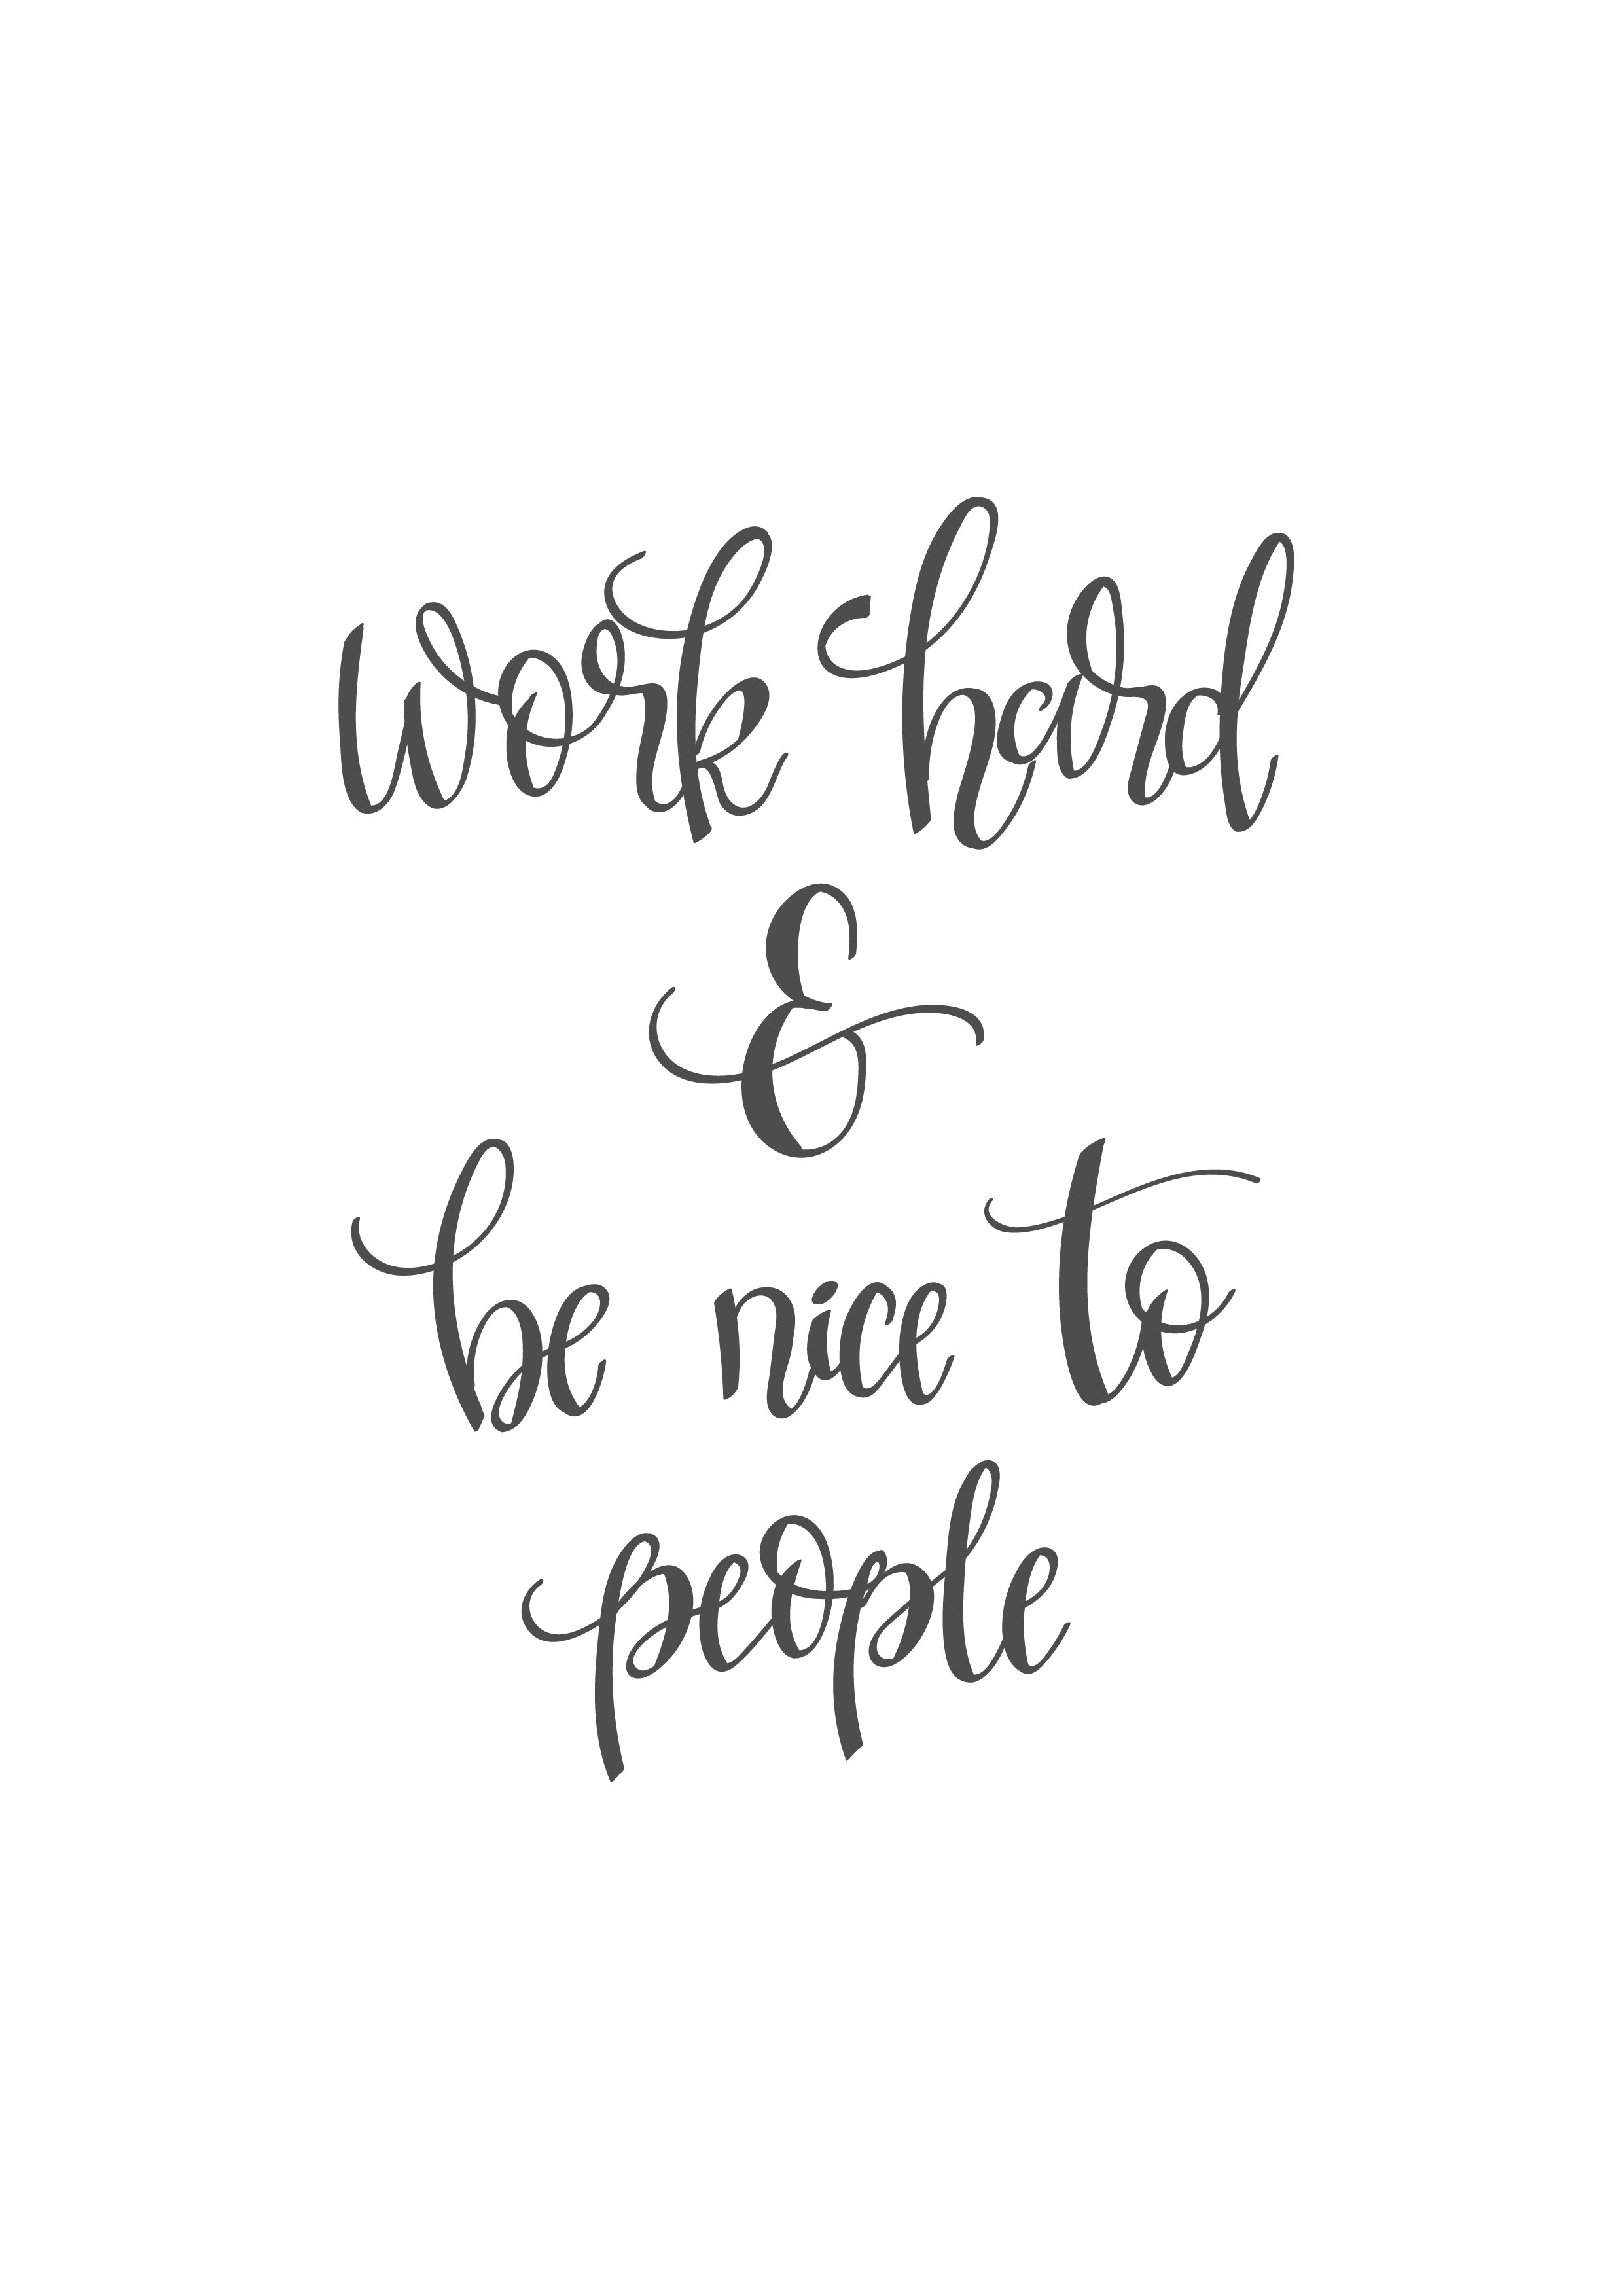 Work hard and be nice to people clipart graphic royalty free Work Hard And Be Nice To People Print graphic royalty free